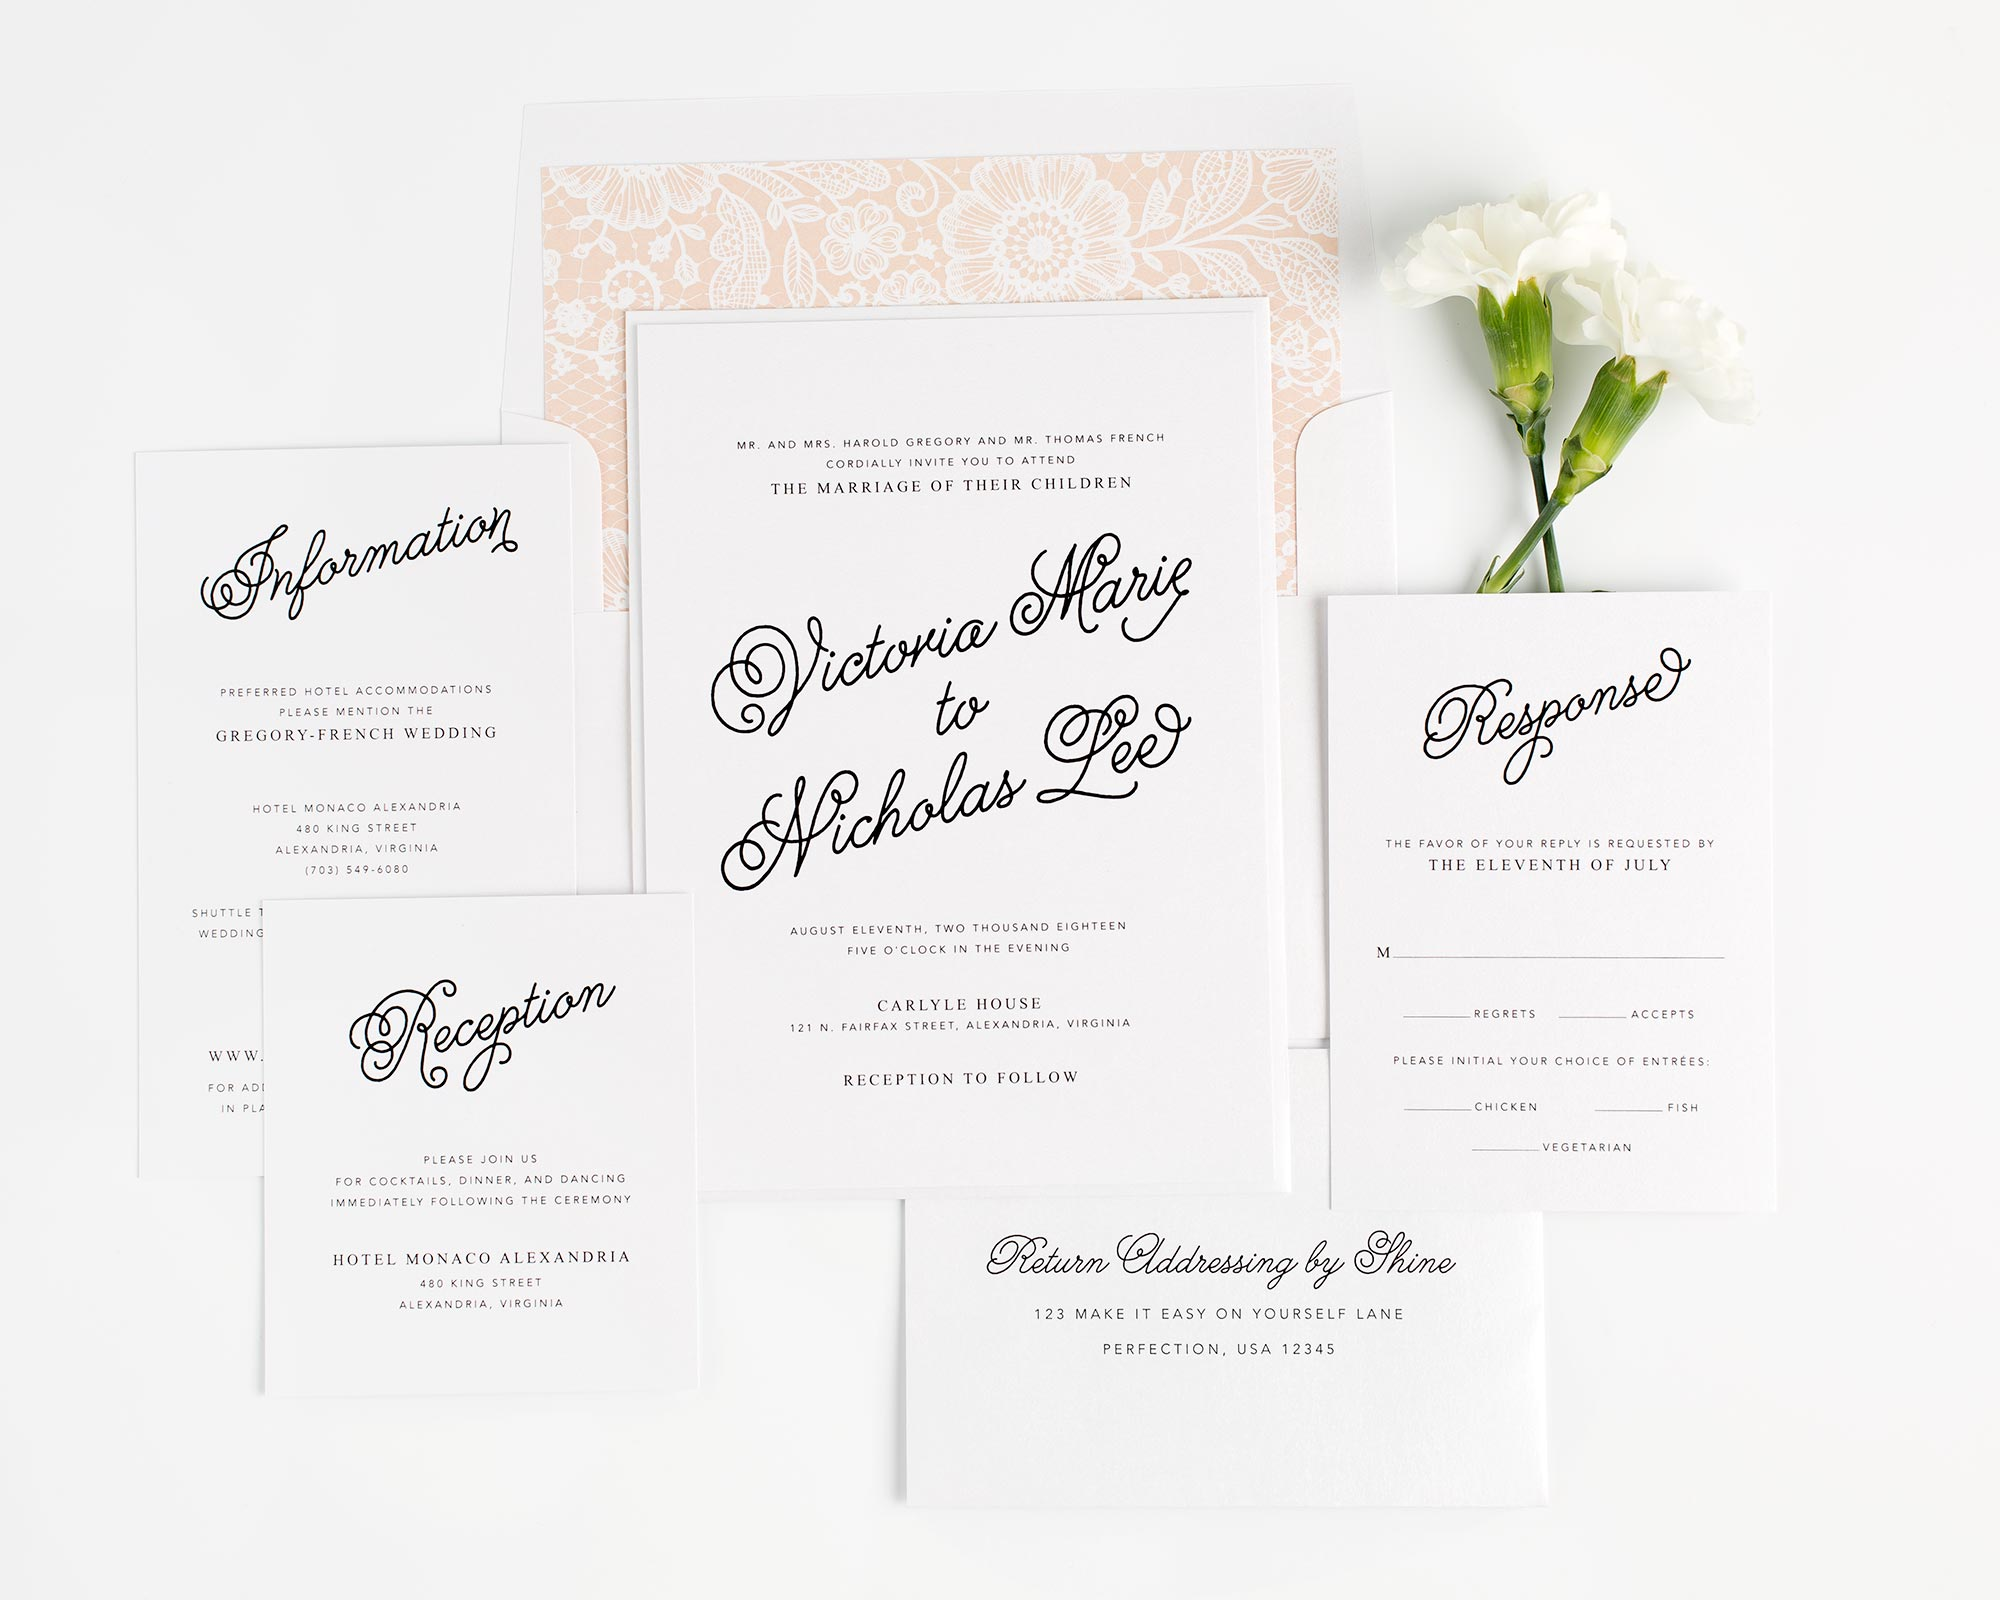 Lovely Wedding Invitations in Peach